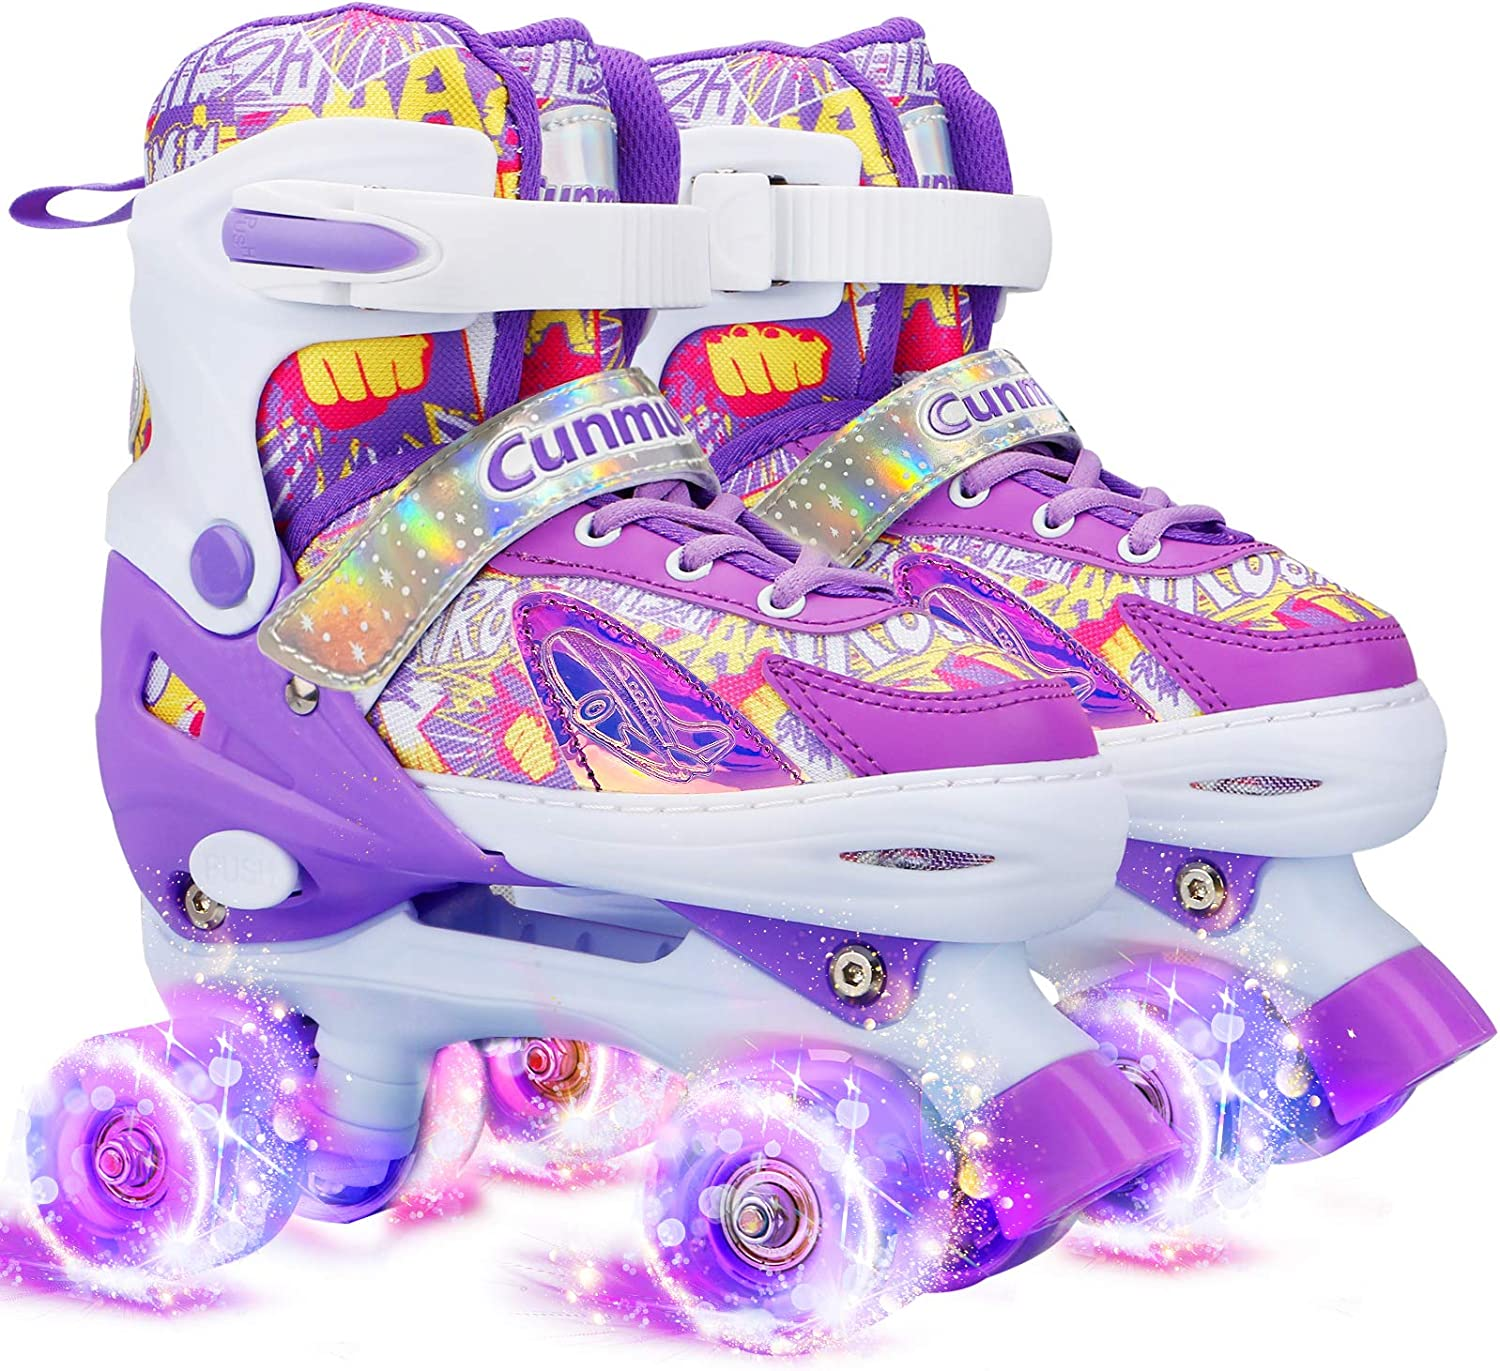 1 year warranty Cunmucu Roller Skates for Inventory cleanup selling sale Girls and Boys 4 Size Men Women